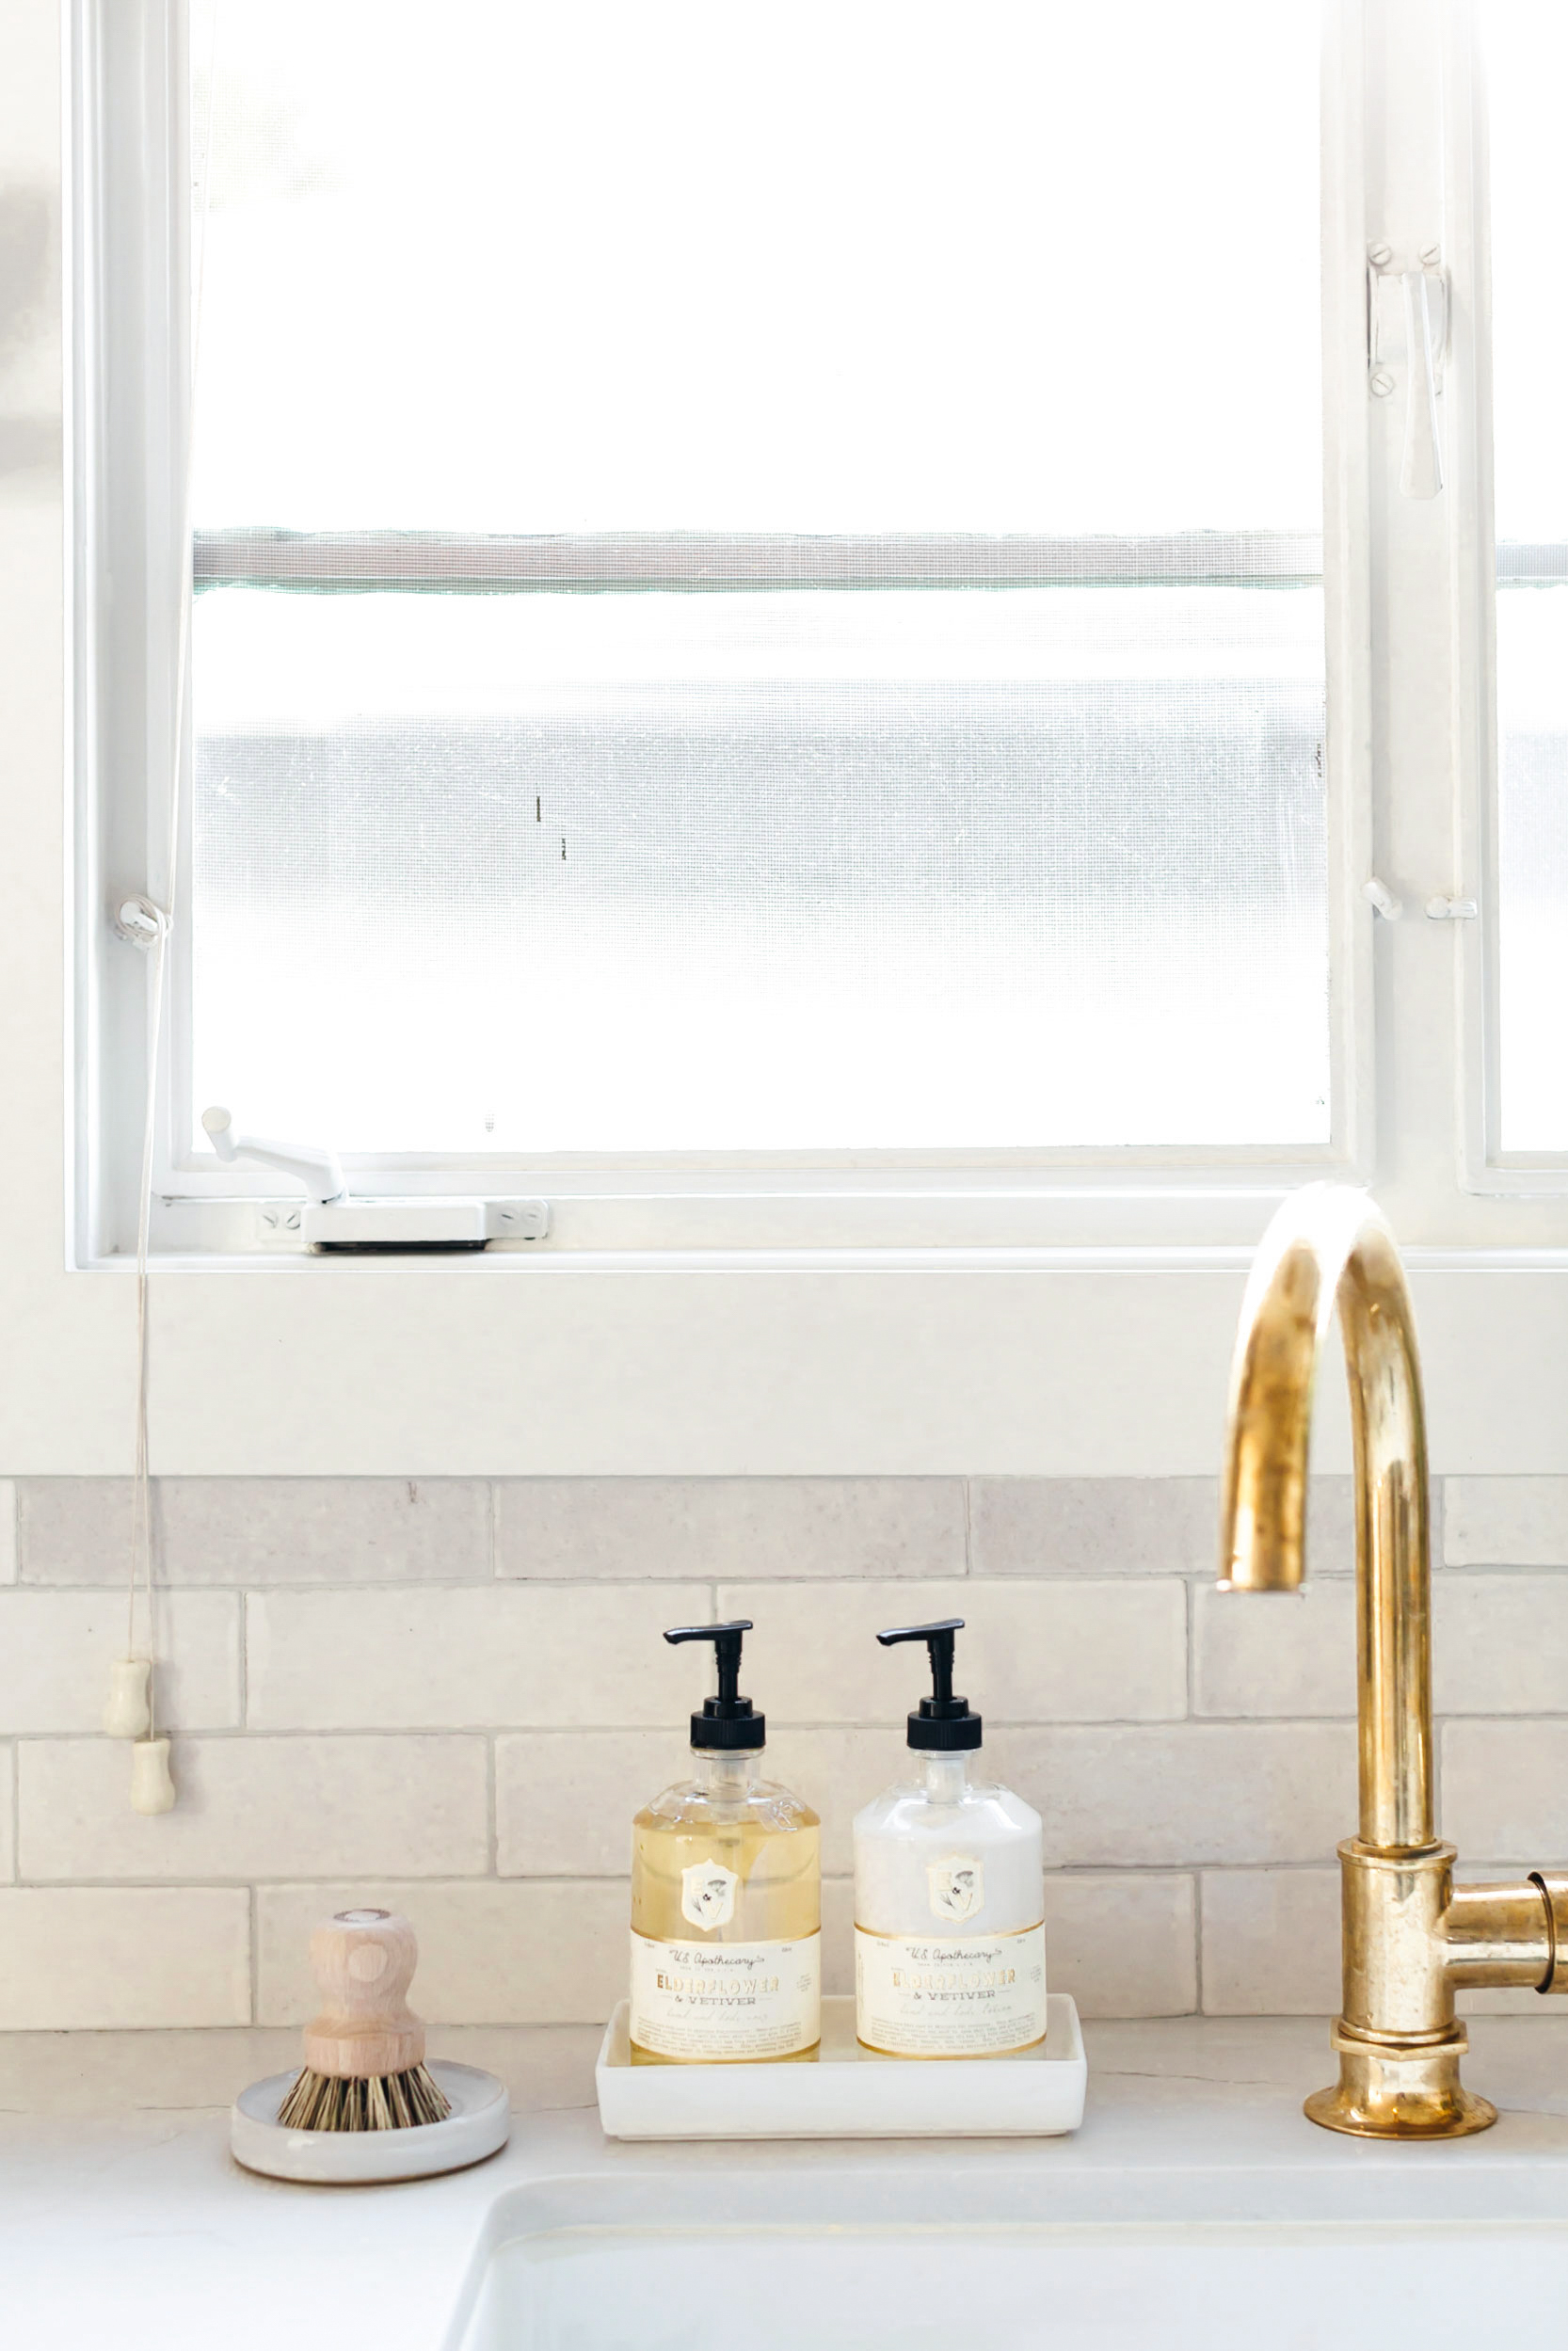 Our Kitchen Reno: Waterworks Brass Faucet + Farmhouse Sink